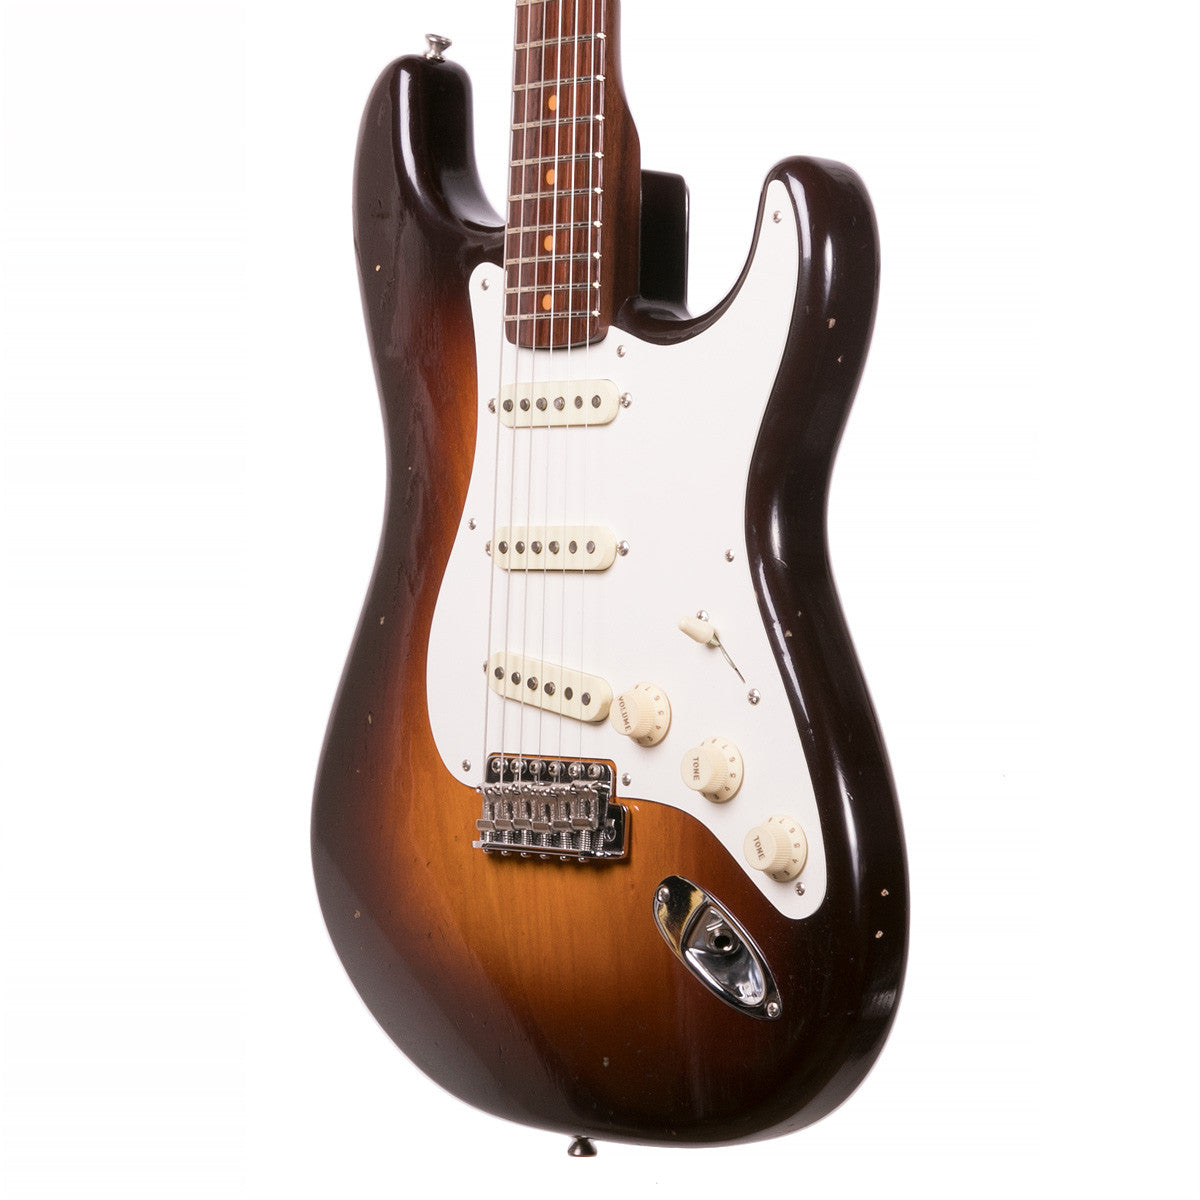 Fender Custom Shop - '57 Stratocaster Journeyman Relic, Rosewood - Chocloate 2-Tone Sunburst | Lucky Fret Music Co.